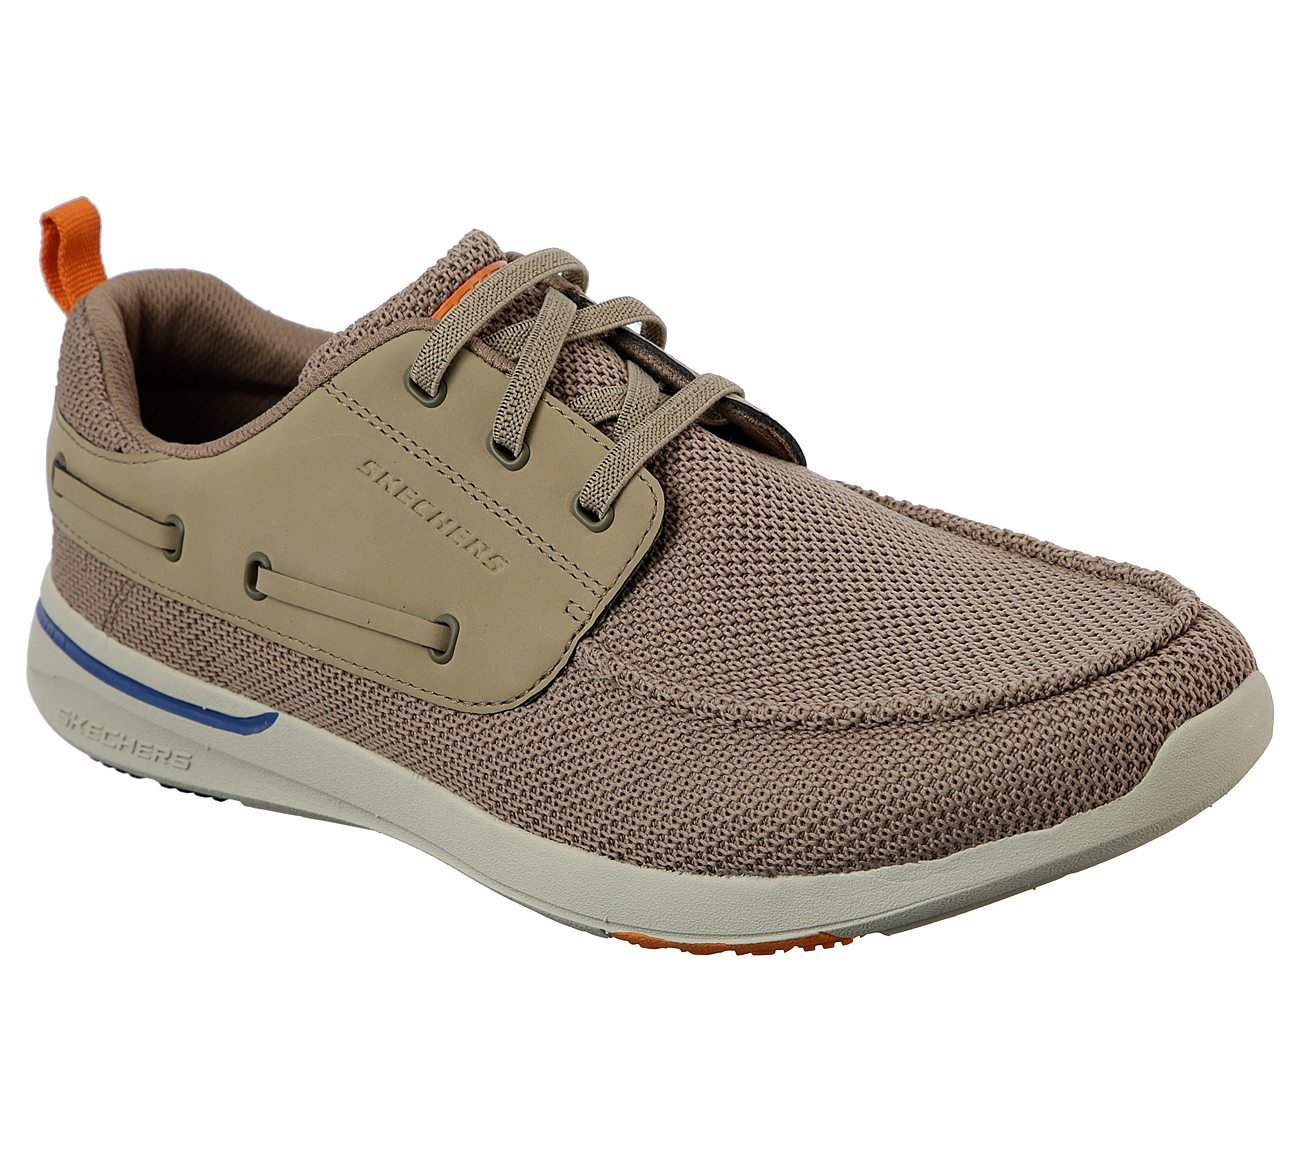 Skechers Men's Relaxed Fit Elent Berick B079R953F7 9  M US|Taupe